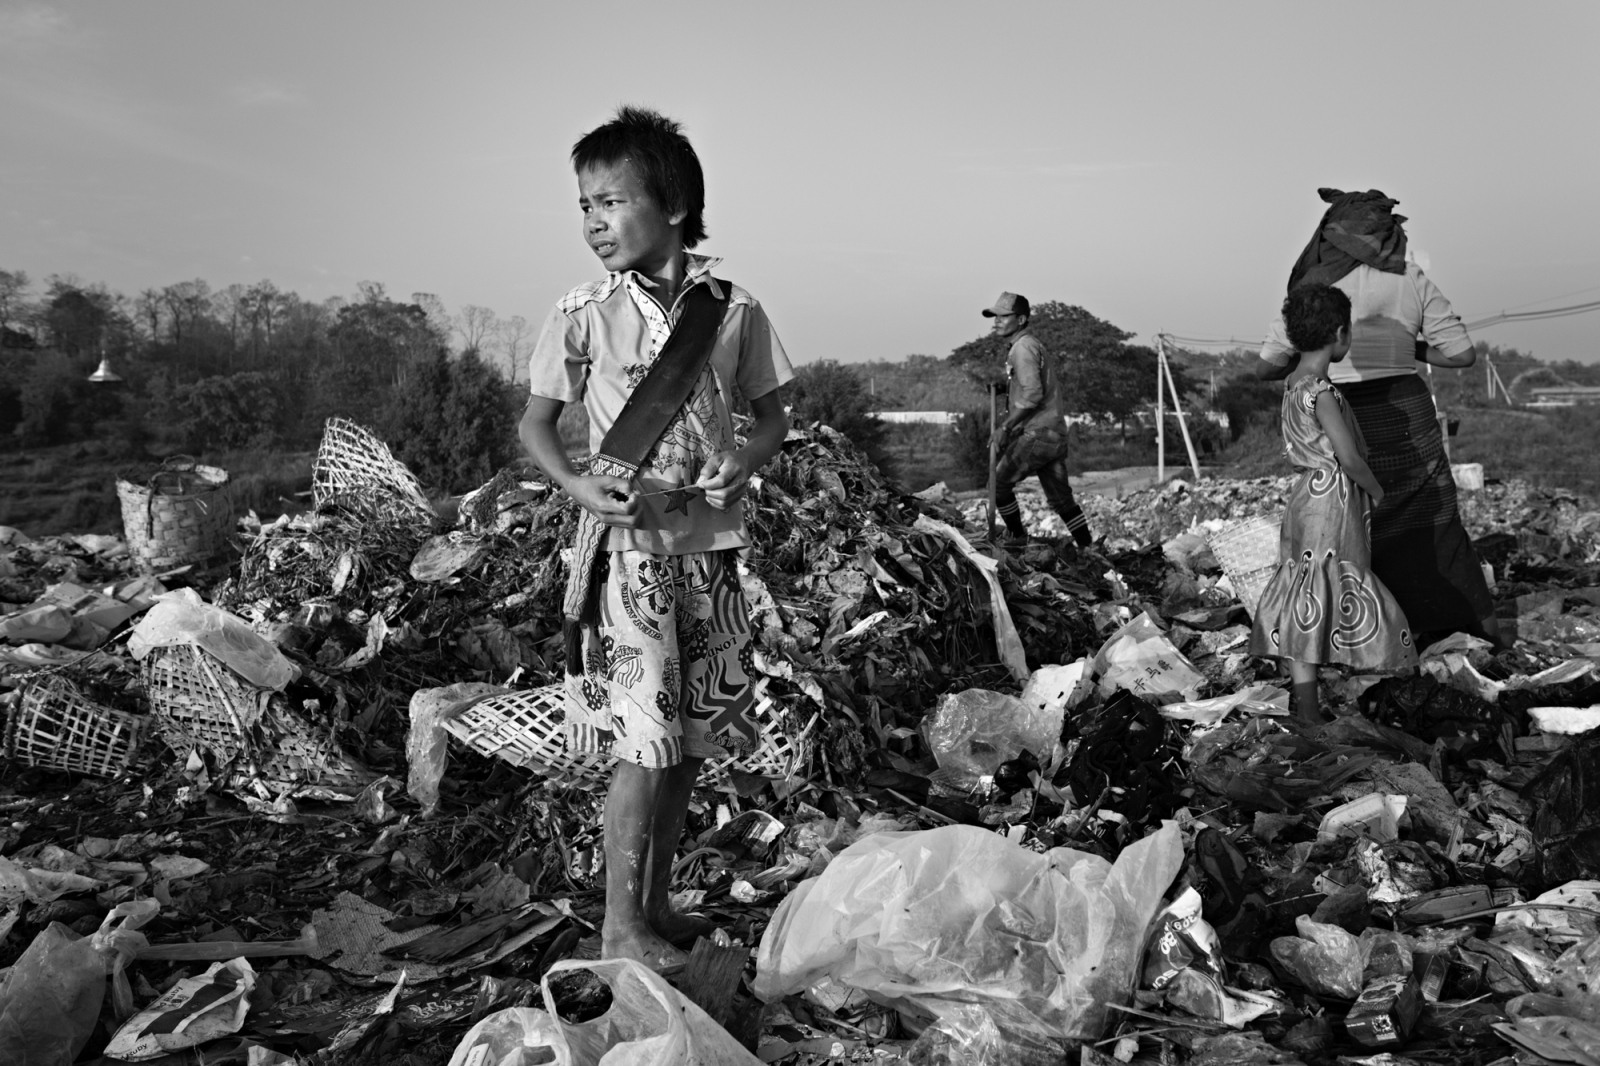 Naing Lin Oo scrounges through a trash pile after work, attempting to find something valuable to sell so that he can earn some cash for himself.